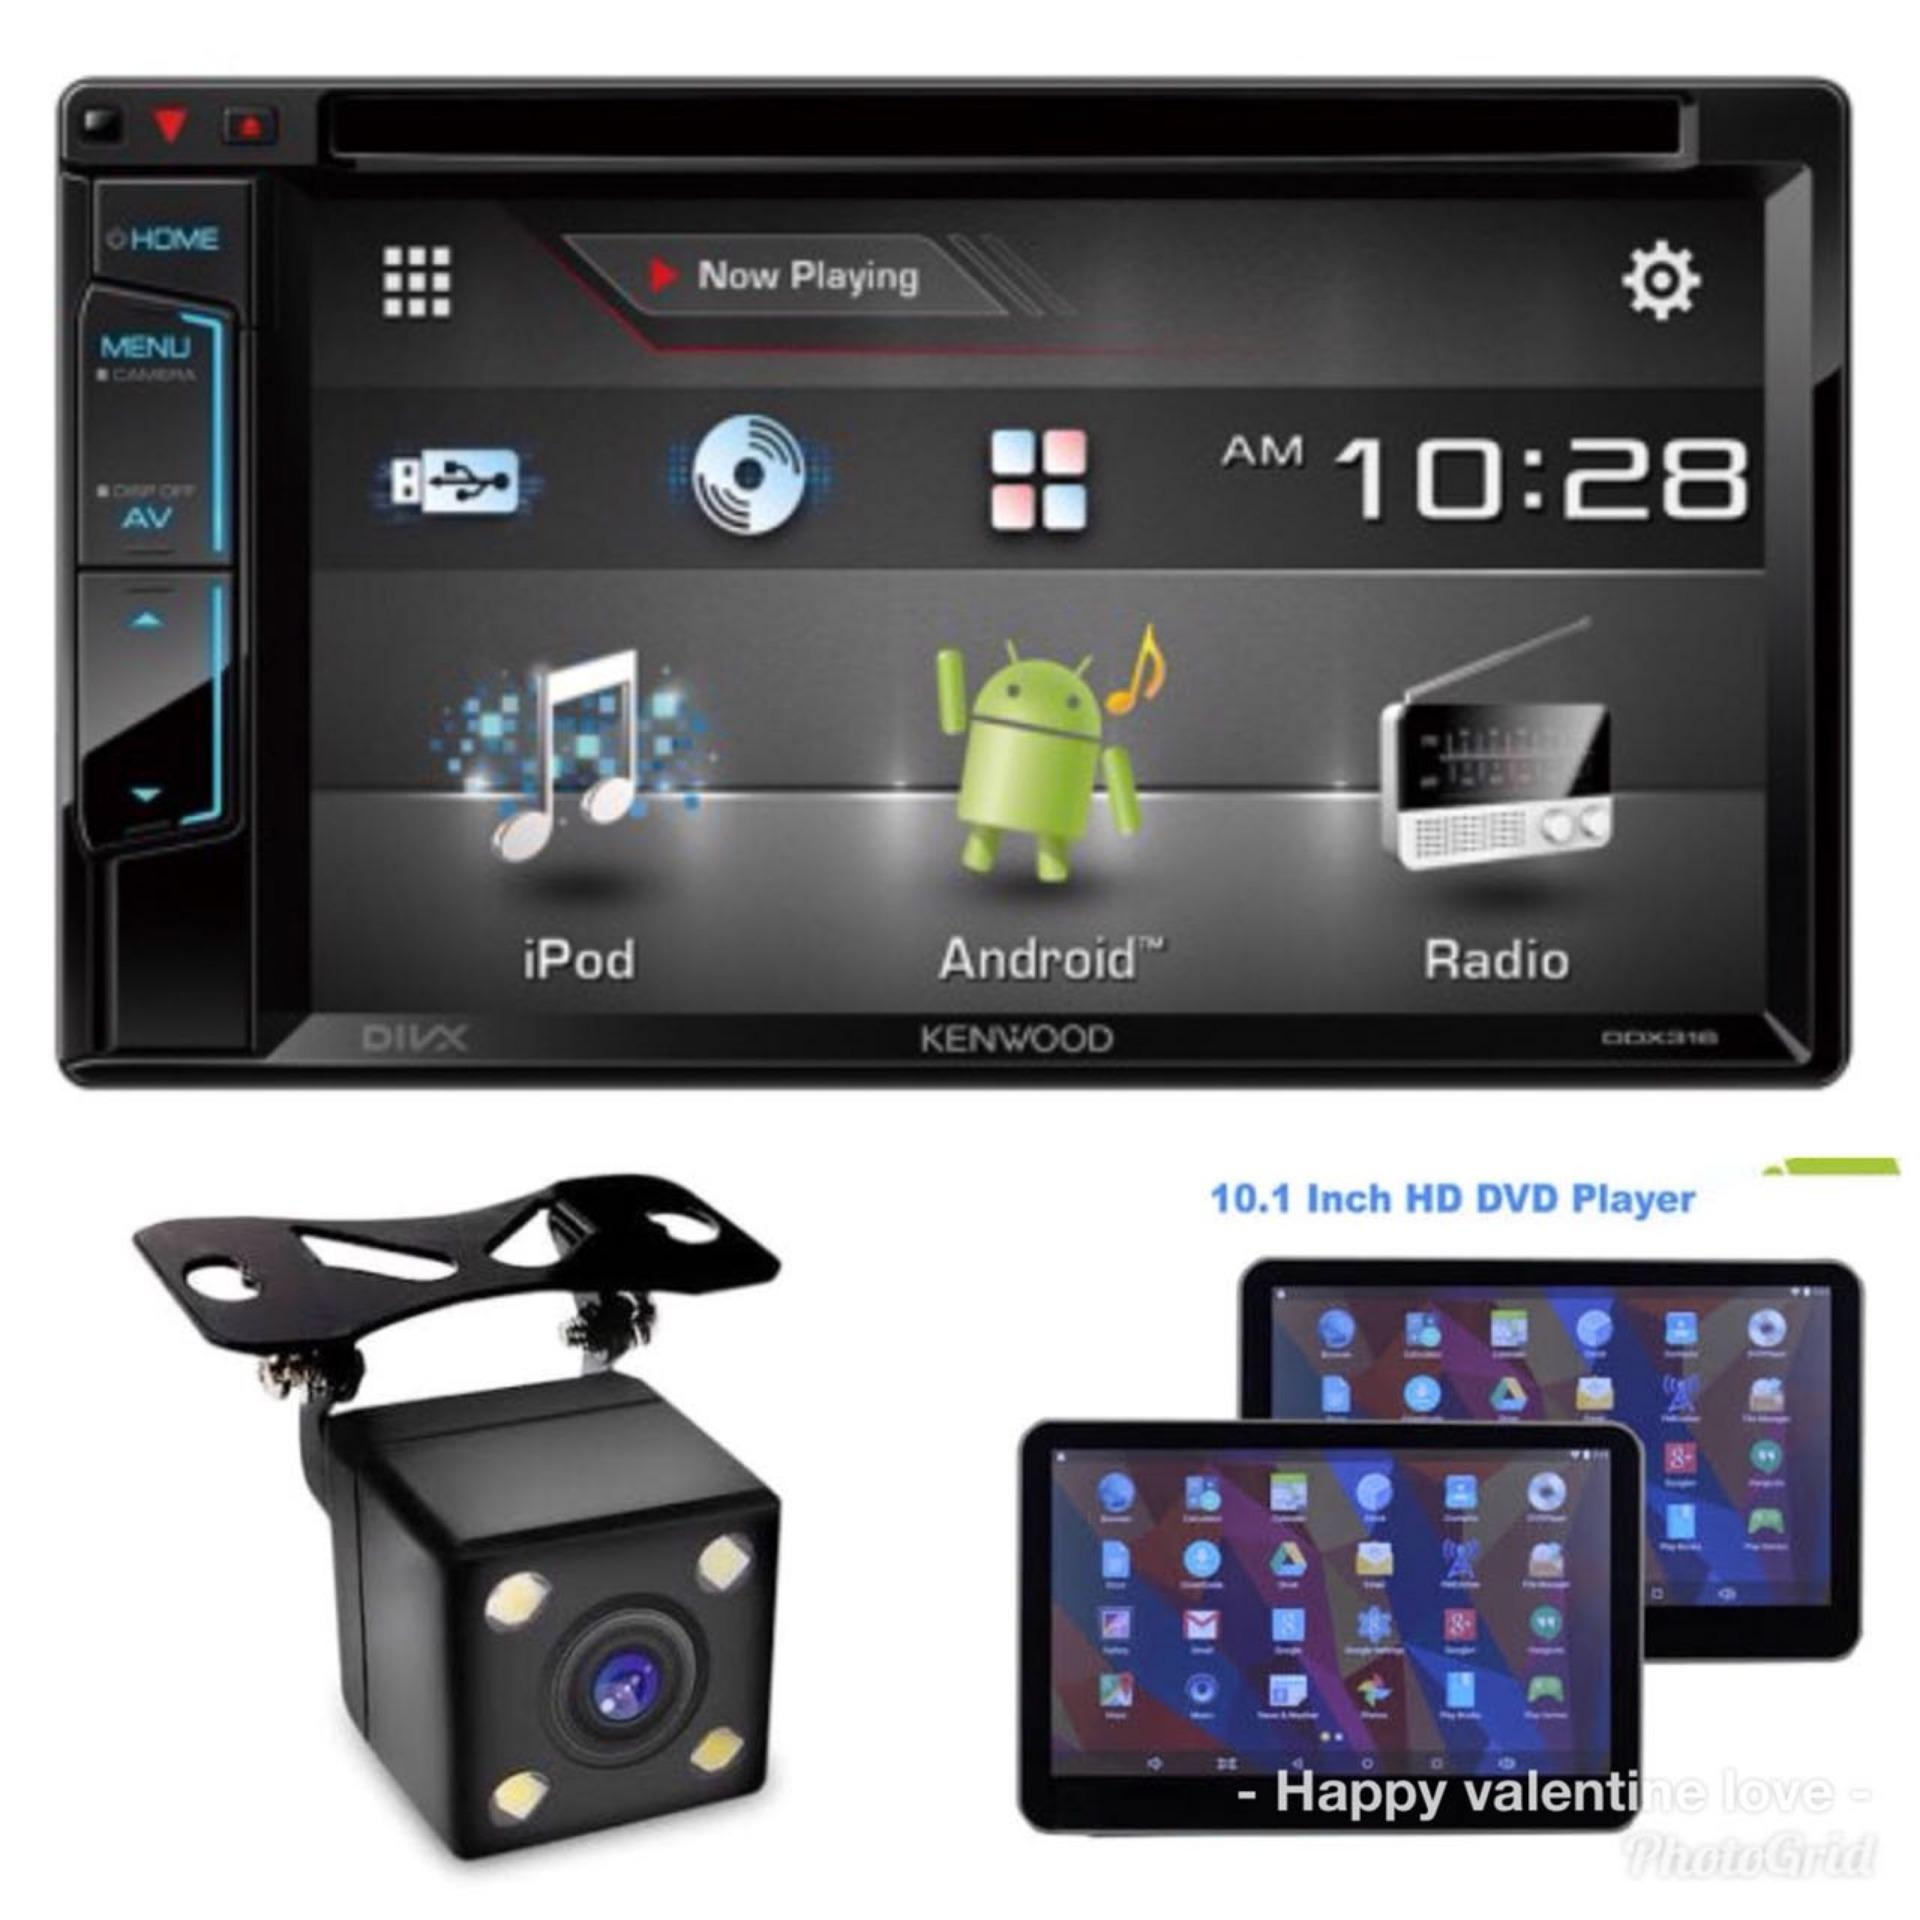 paket entertaiment audio murah meriah paling laku kenwood ddx316dvd, headrest android dvd camera mundur